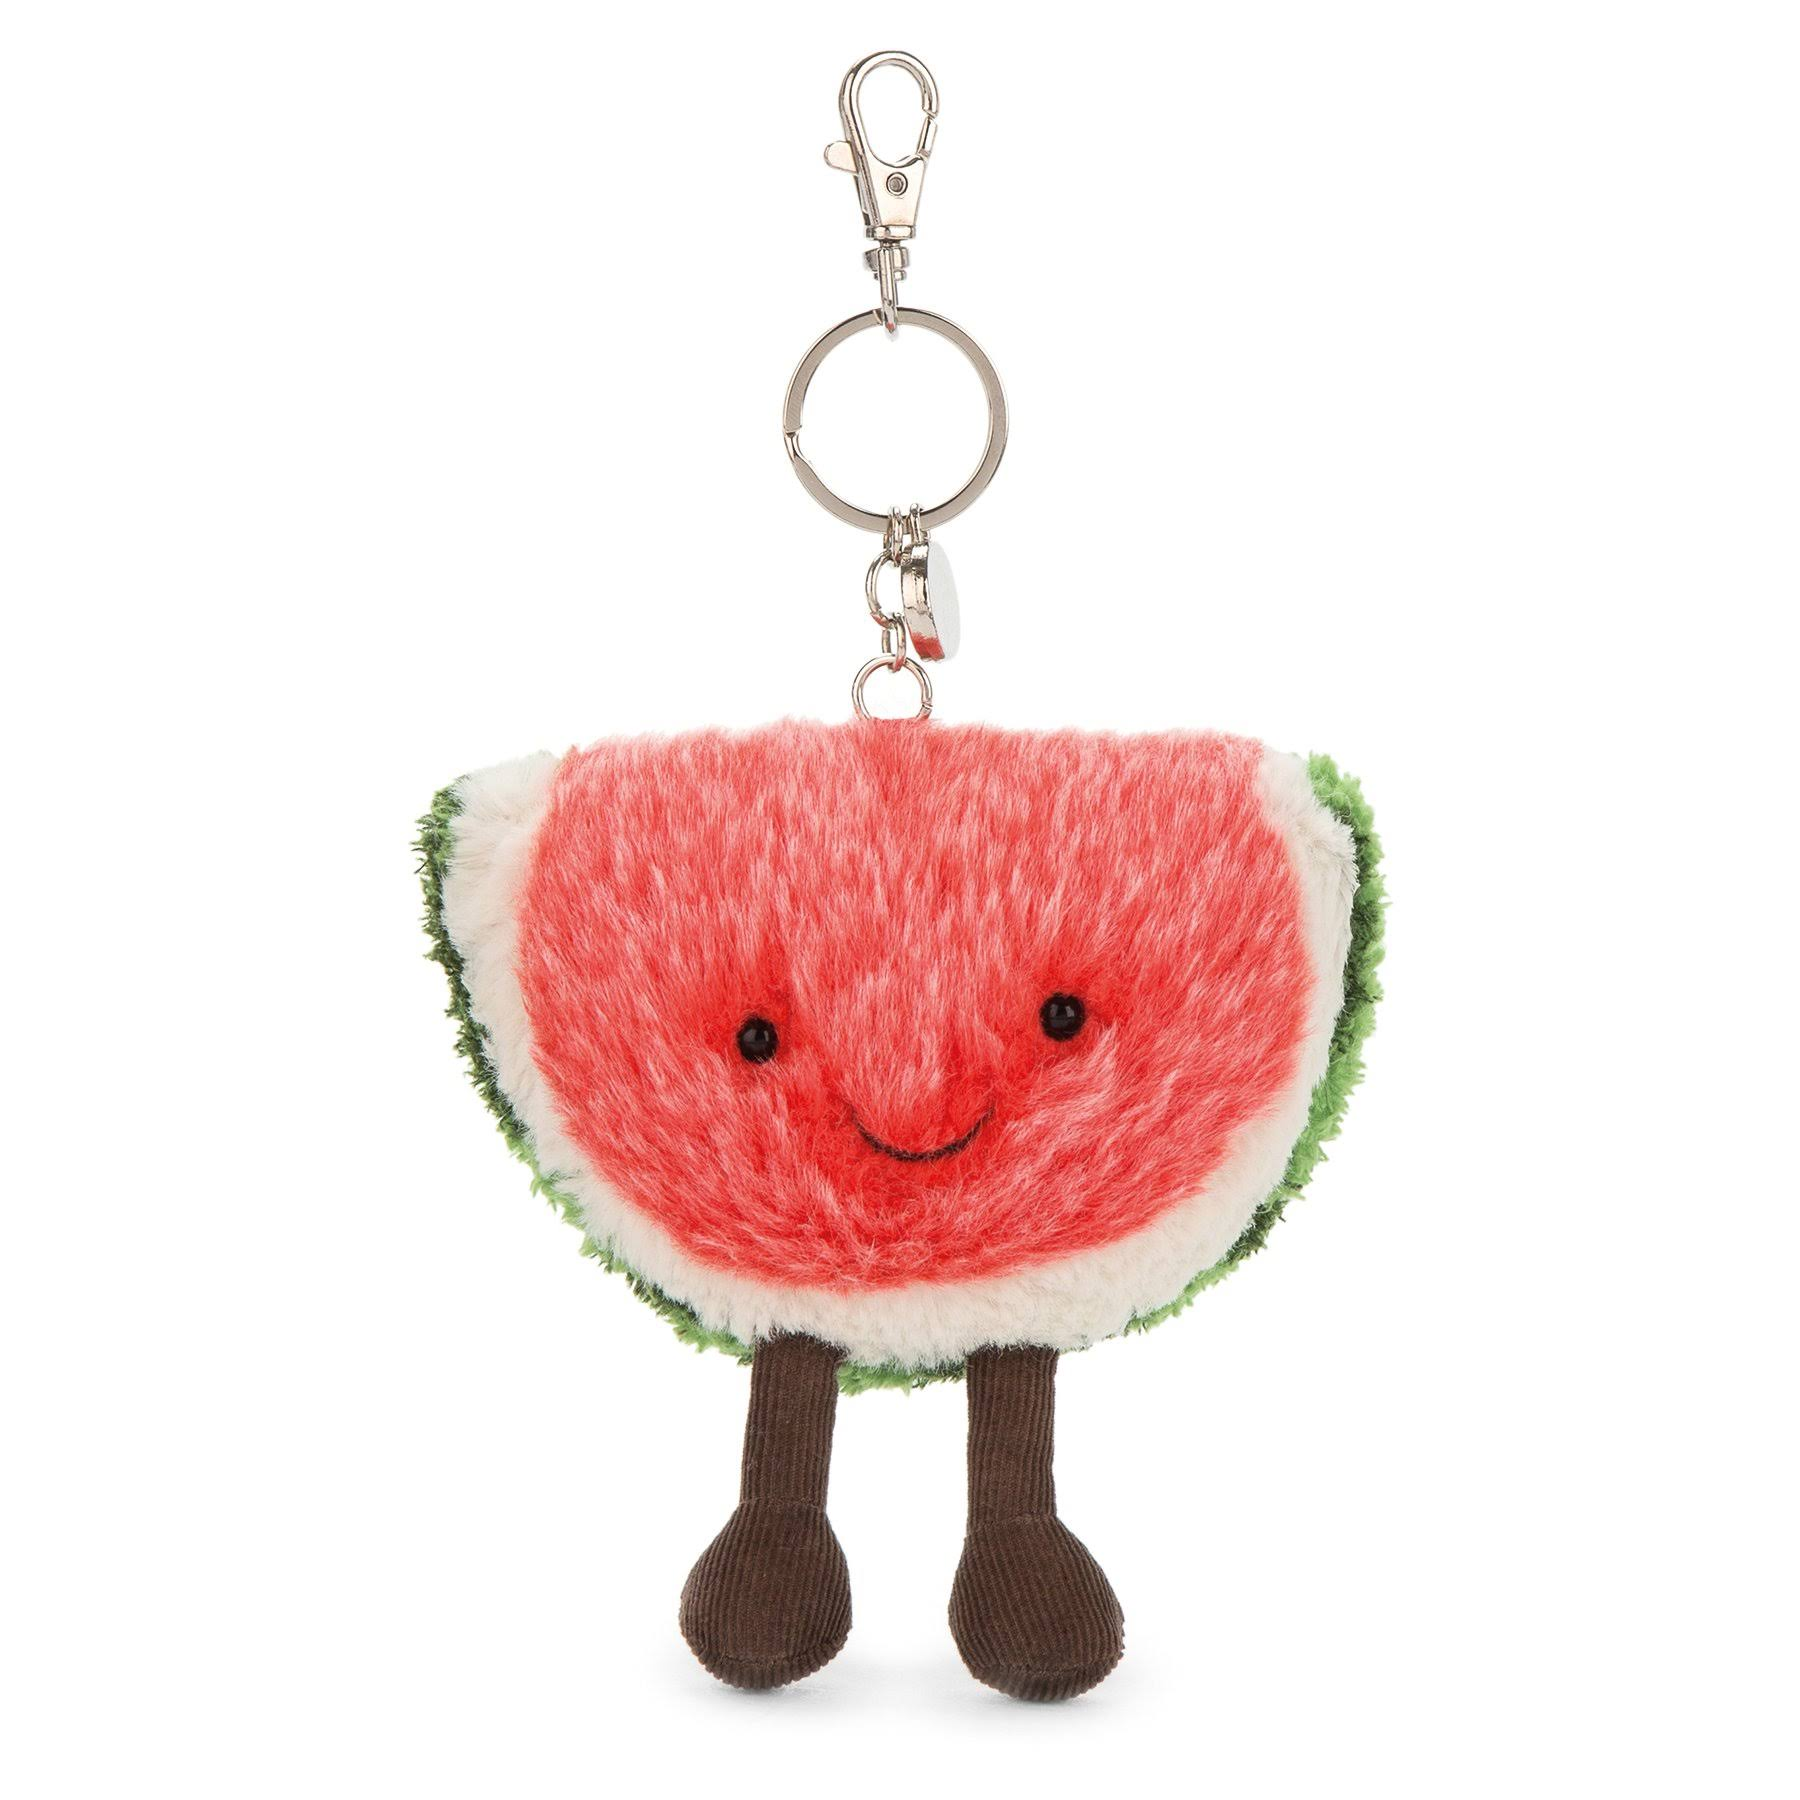 Jellycat - Watermelon Bag Charm